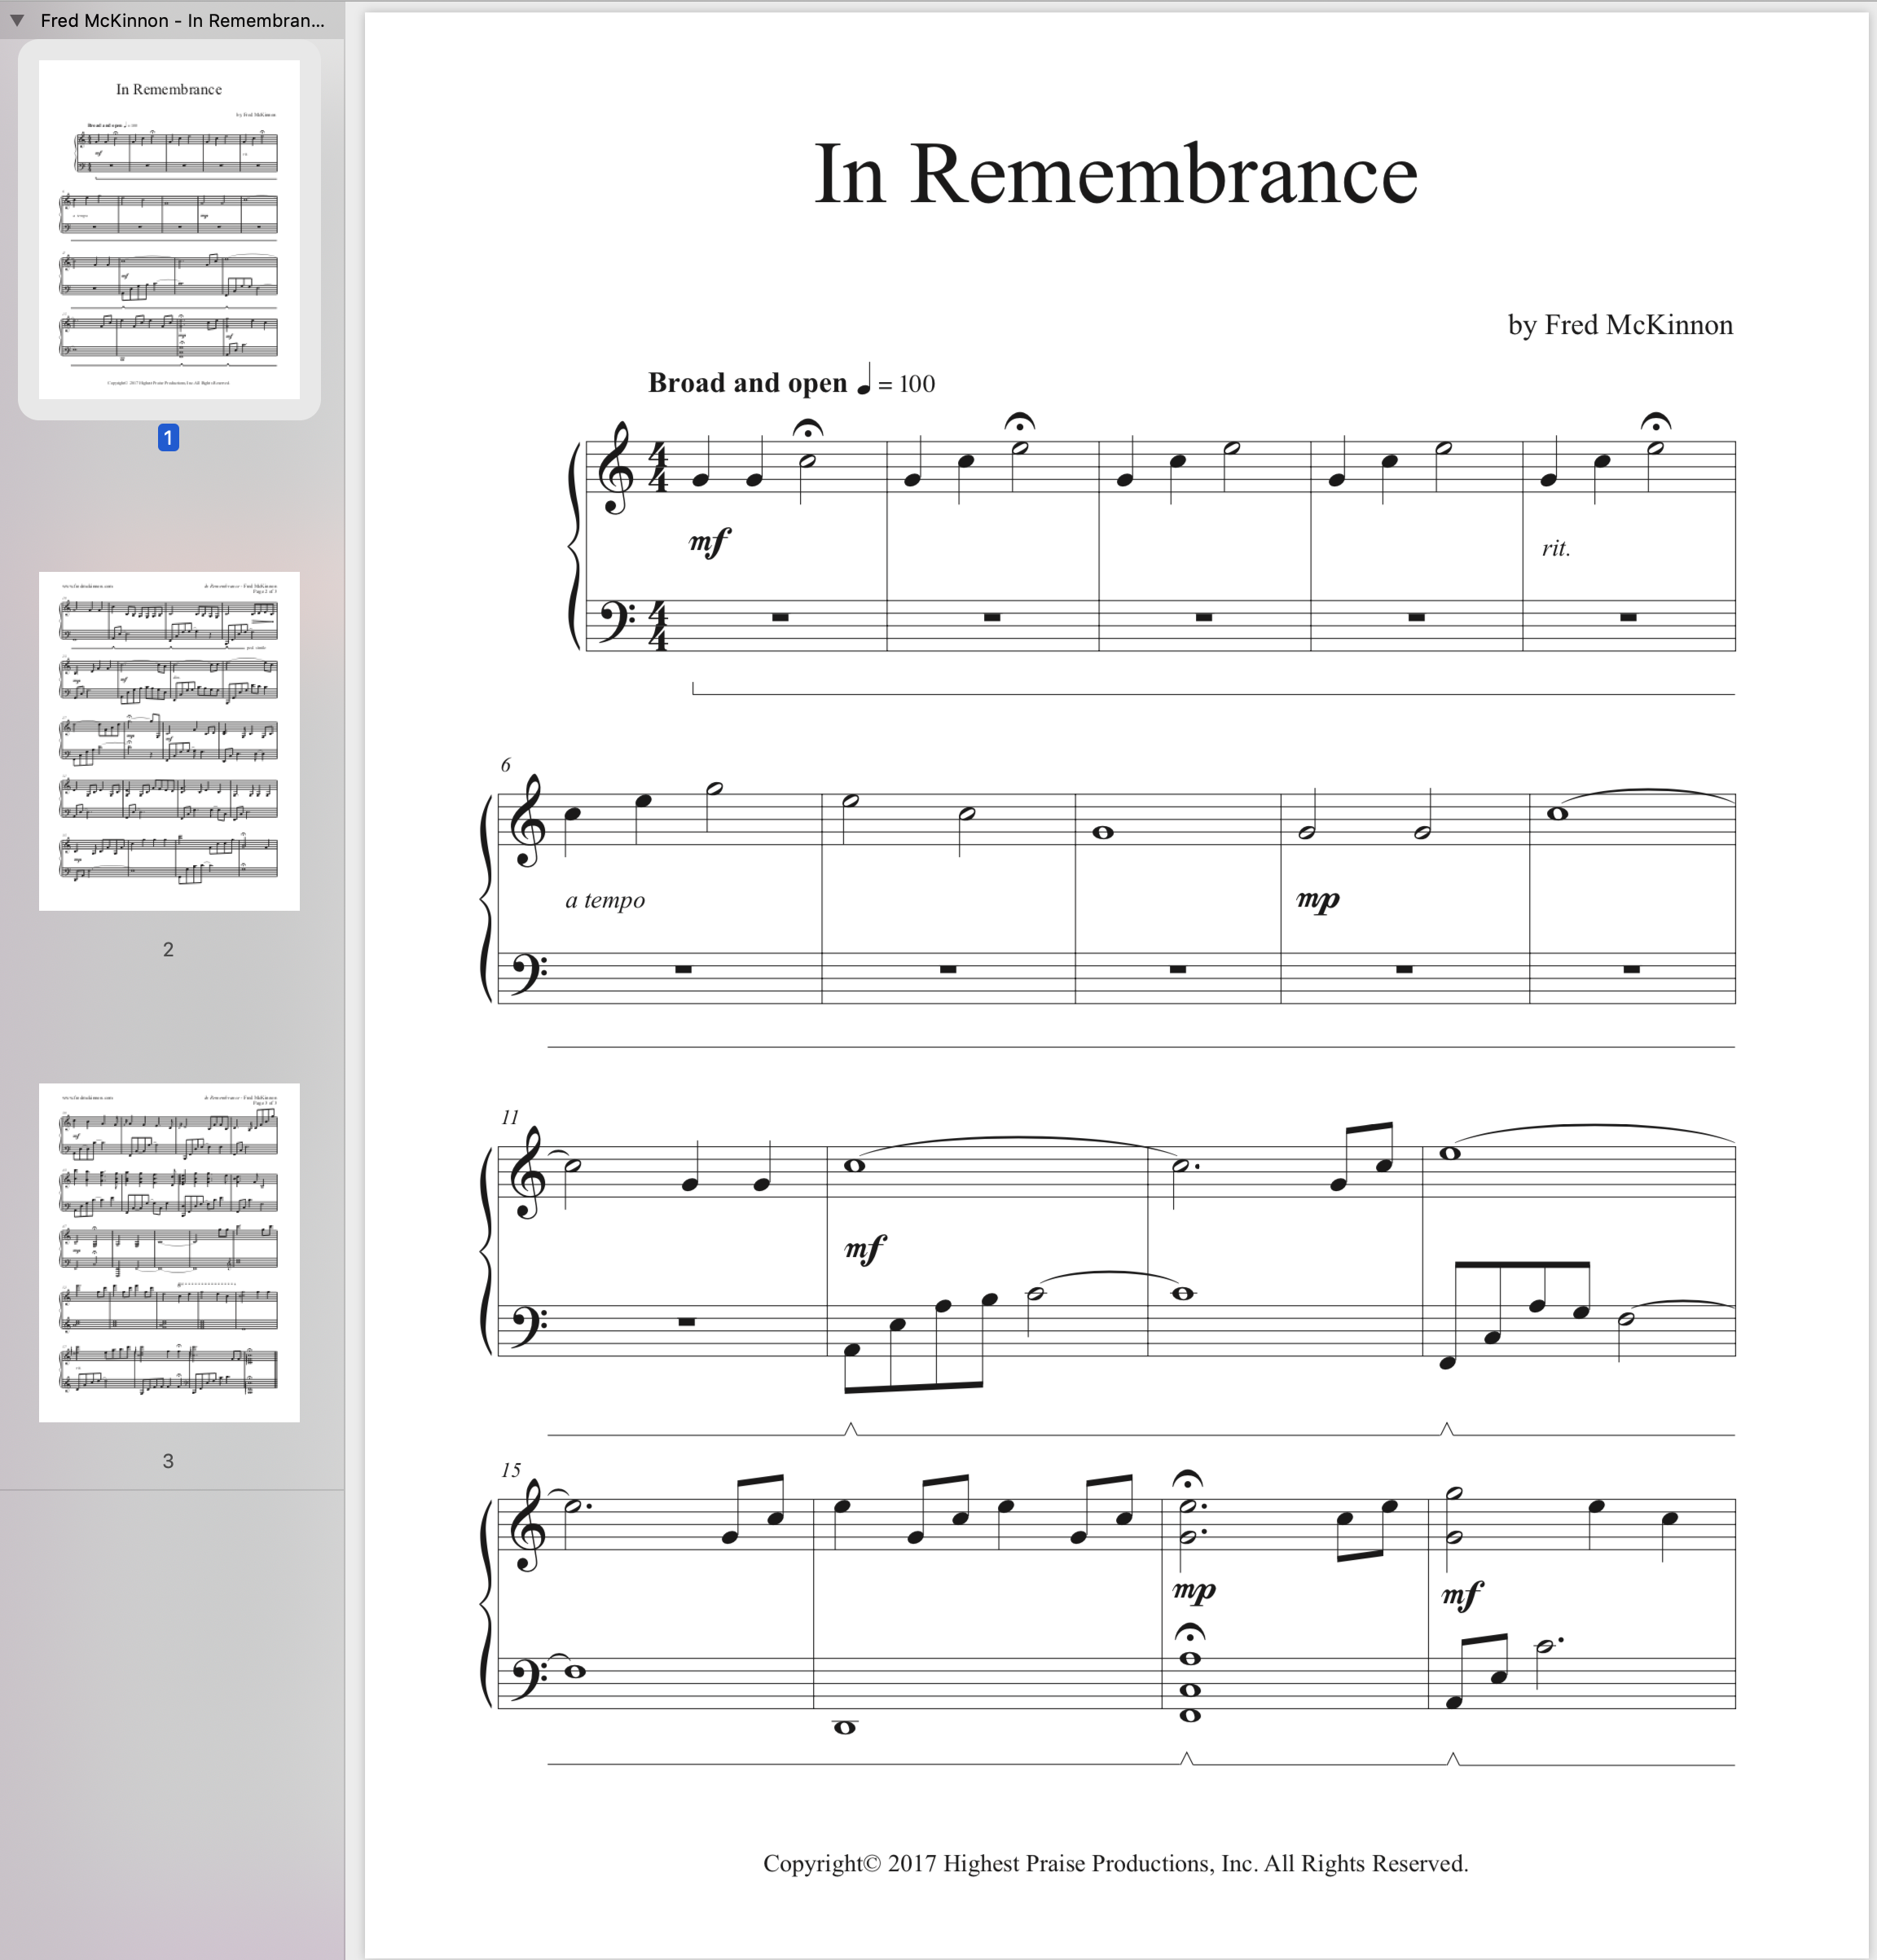 In Remembrance Sheet Music